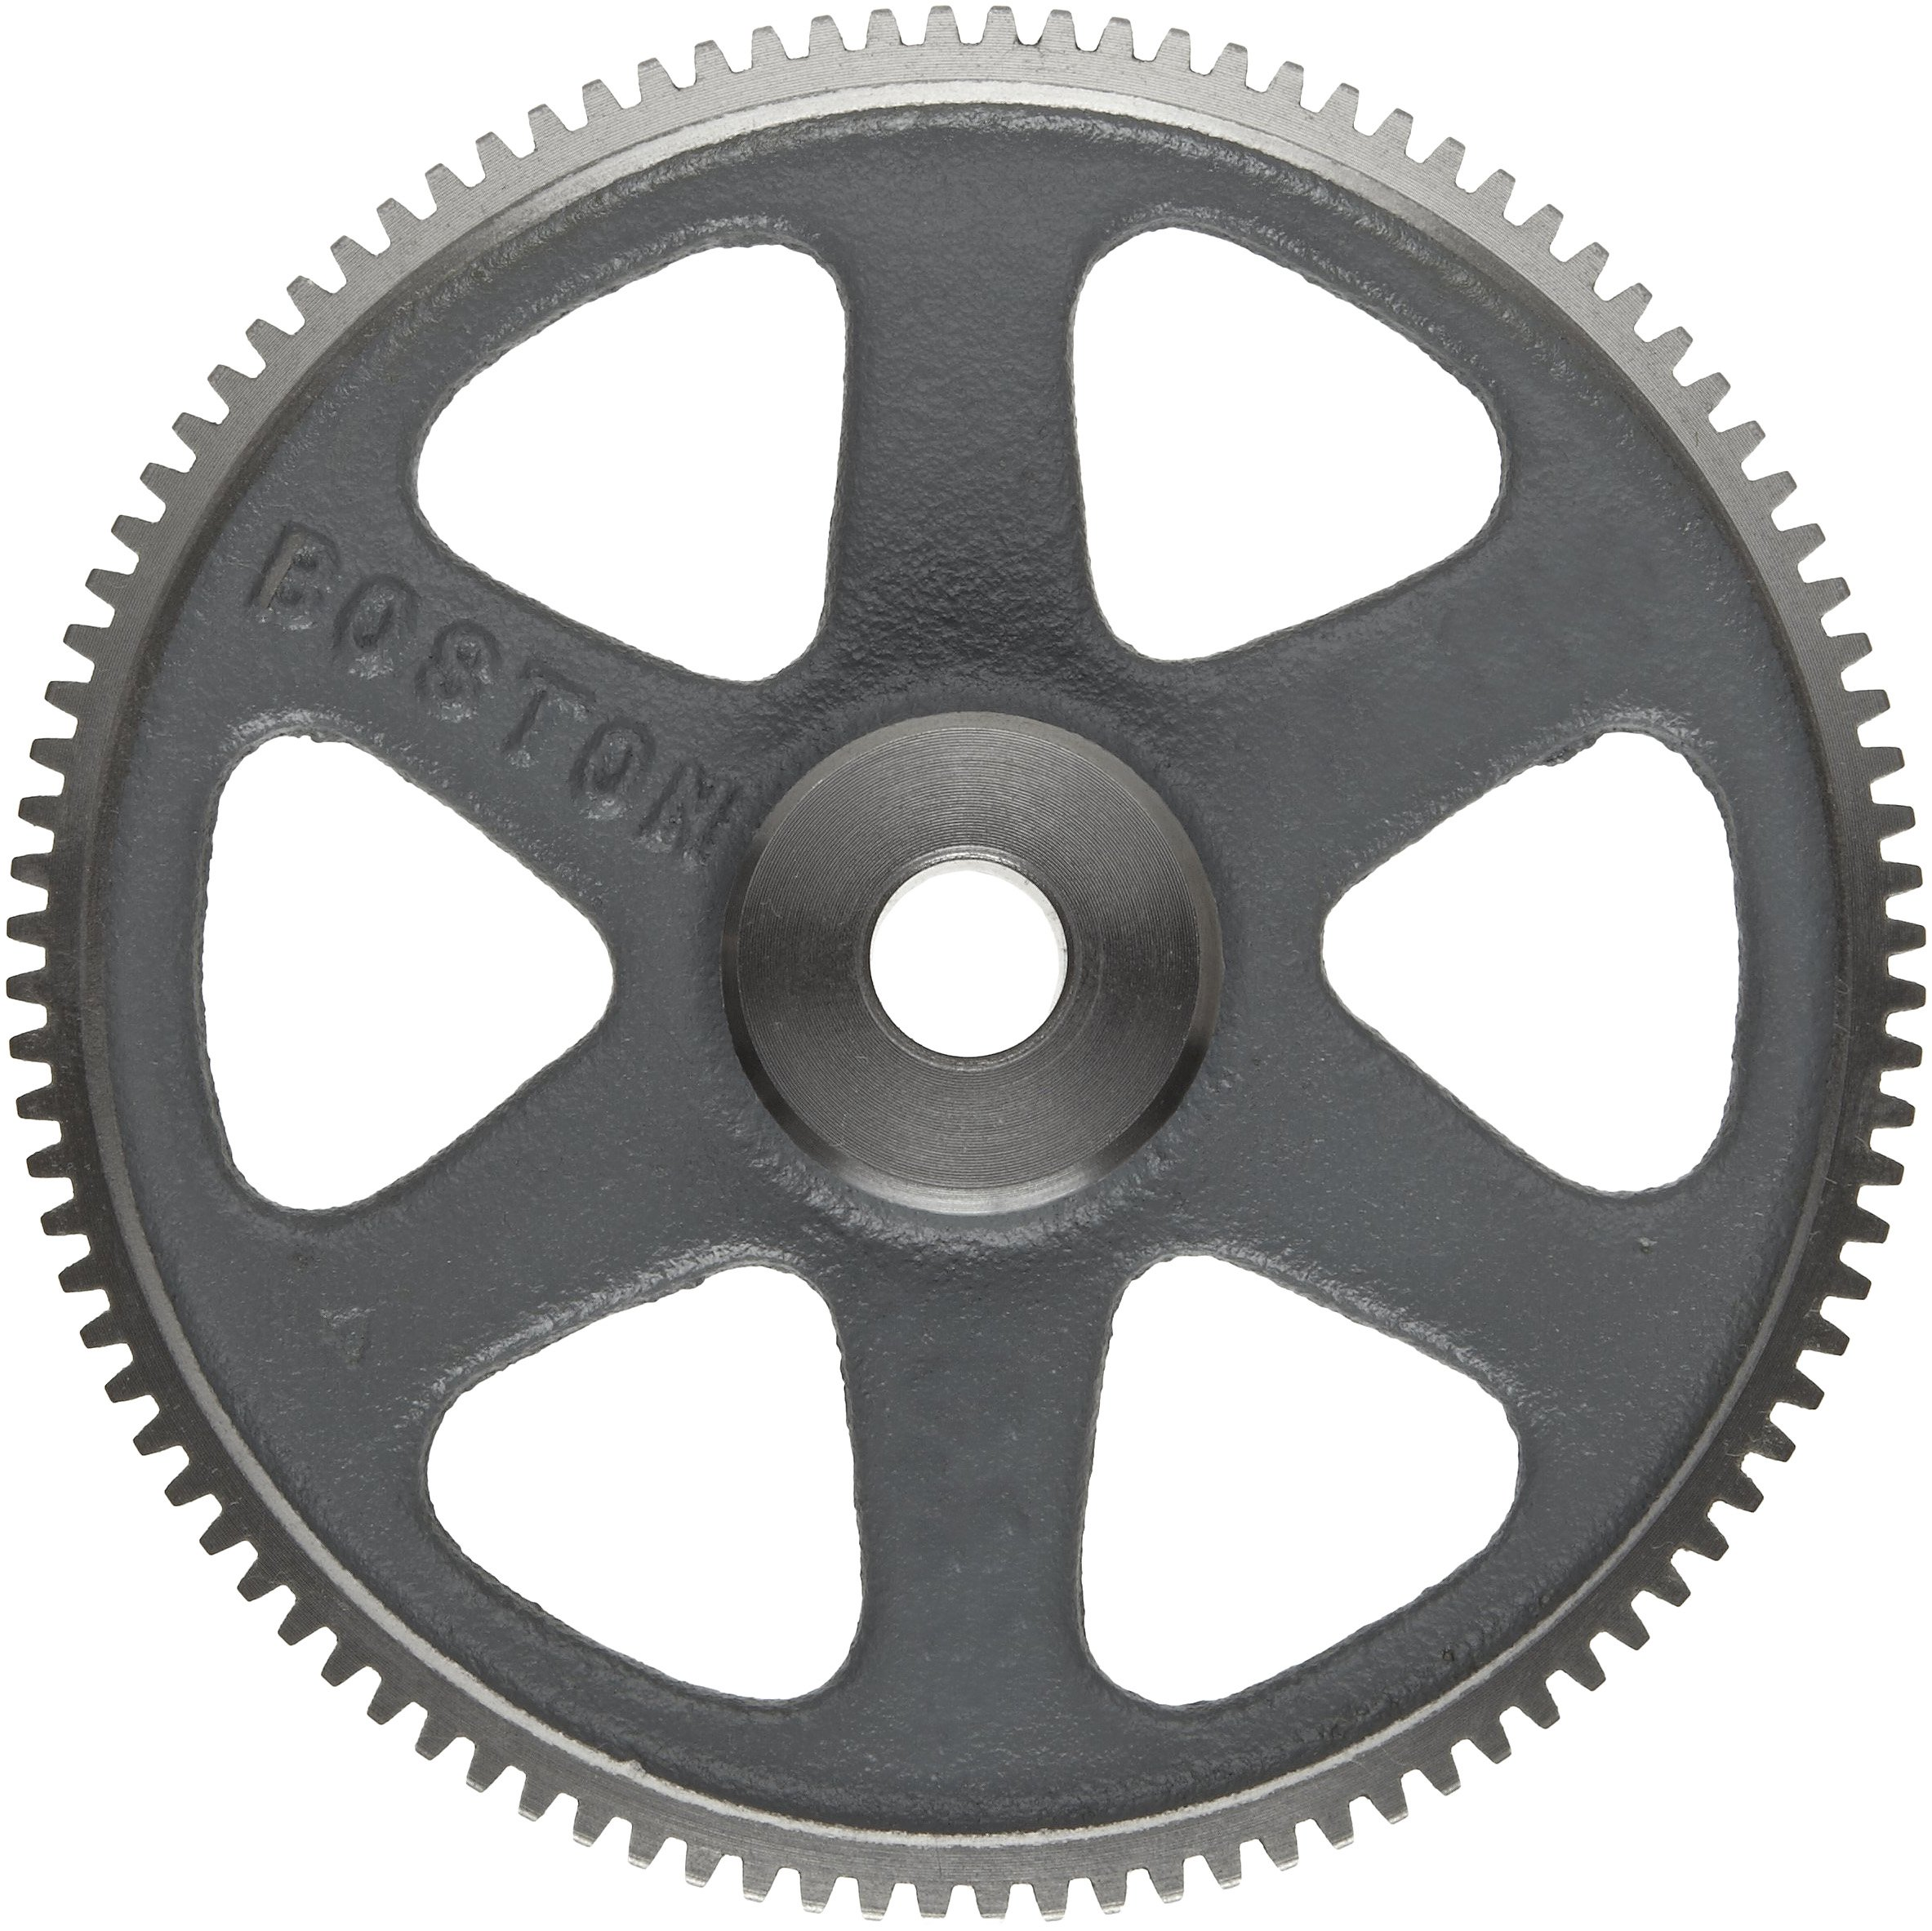 Boston Gear NA96 Spur Gear, 14.5 Pressure Angle, Cast Iron, Inch, 20 Pitch, 0.500'' Bore, 4.900'' OD, 0.375'' Face Width, 96 Teeth